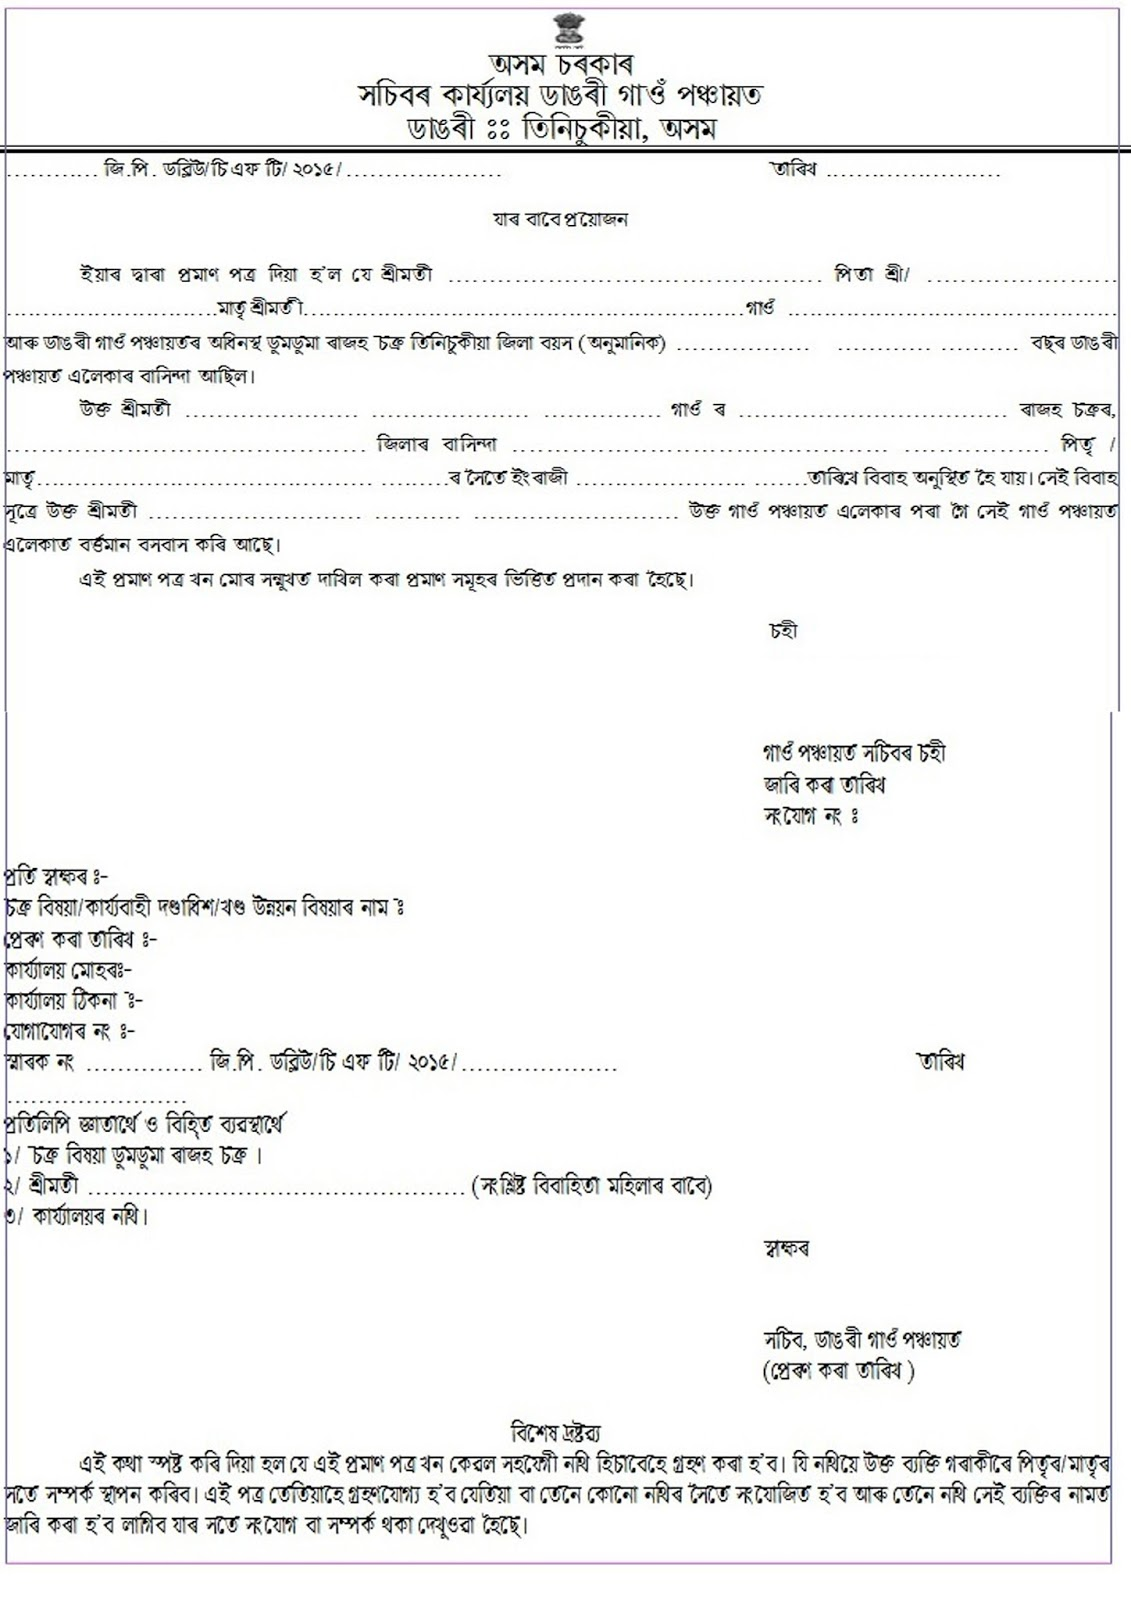 Indian marriage certificate sample format images certificate certificat gaon panchayat format file example images download cv certificat gaon panchayat format file example images xflitez Image collections